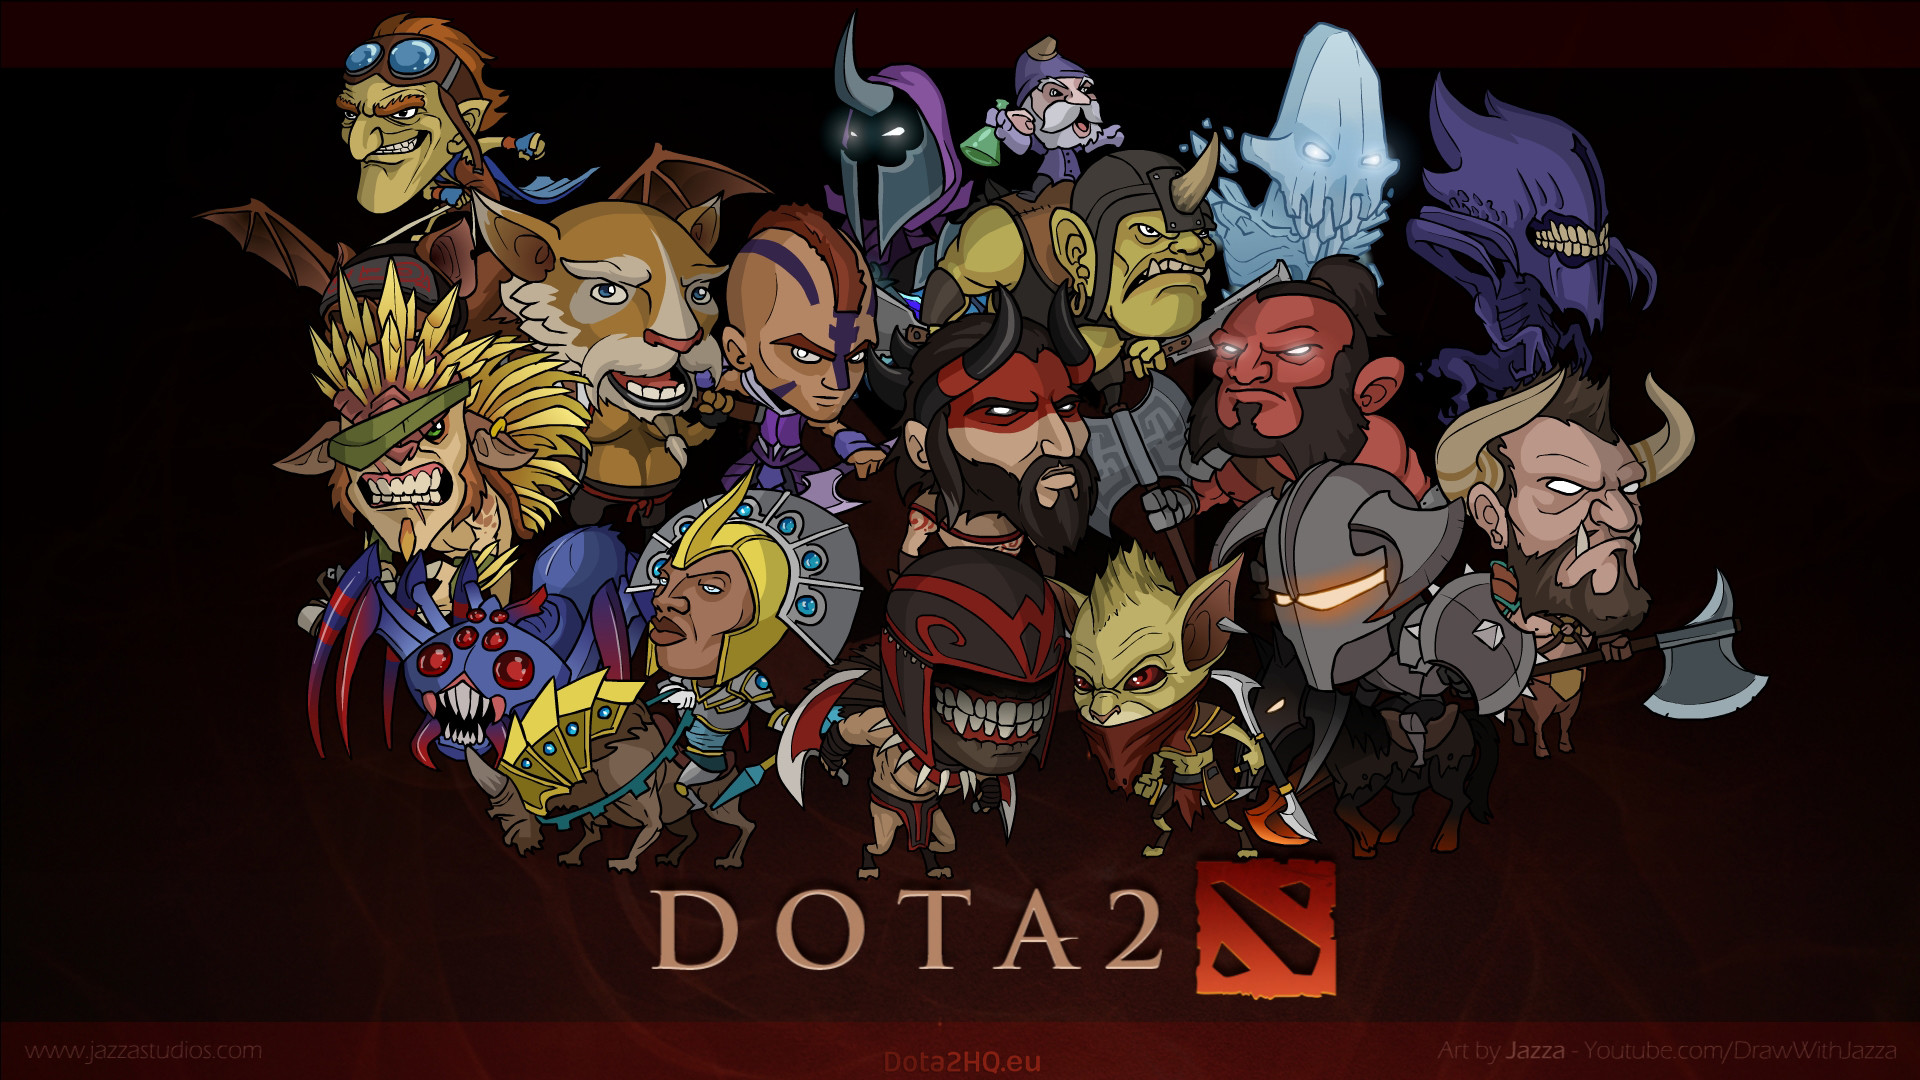 1920x1080 Full HD 1080p Dota 2 Wallpapers HD, Desktop Backgrounds , Images  and Pictures